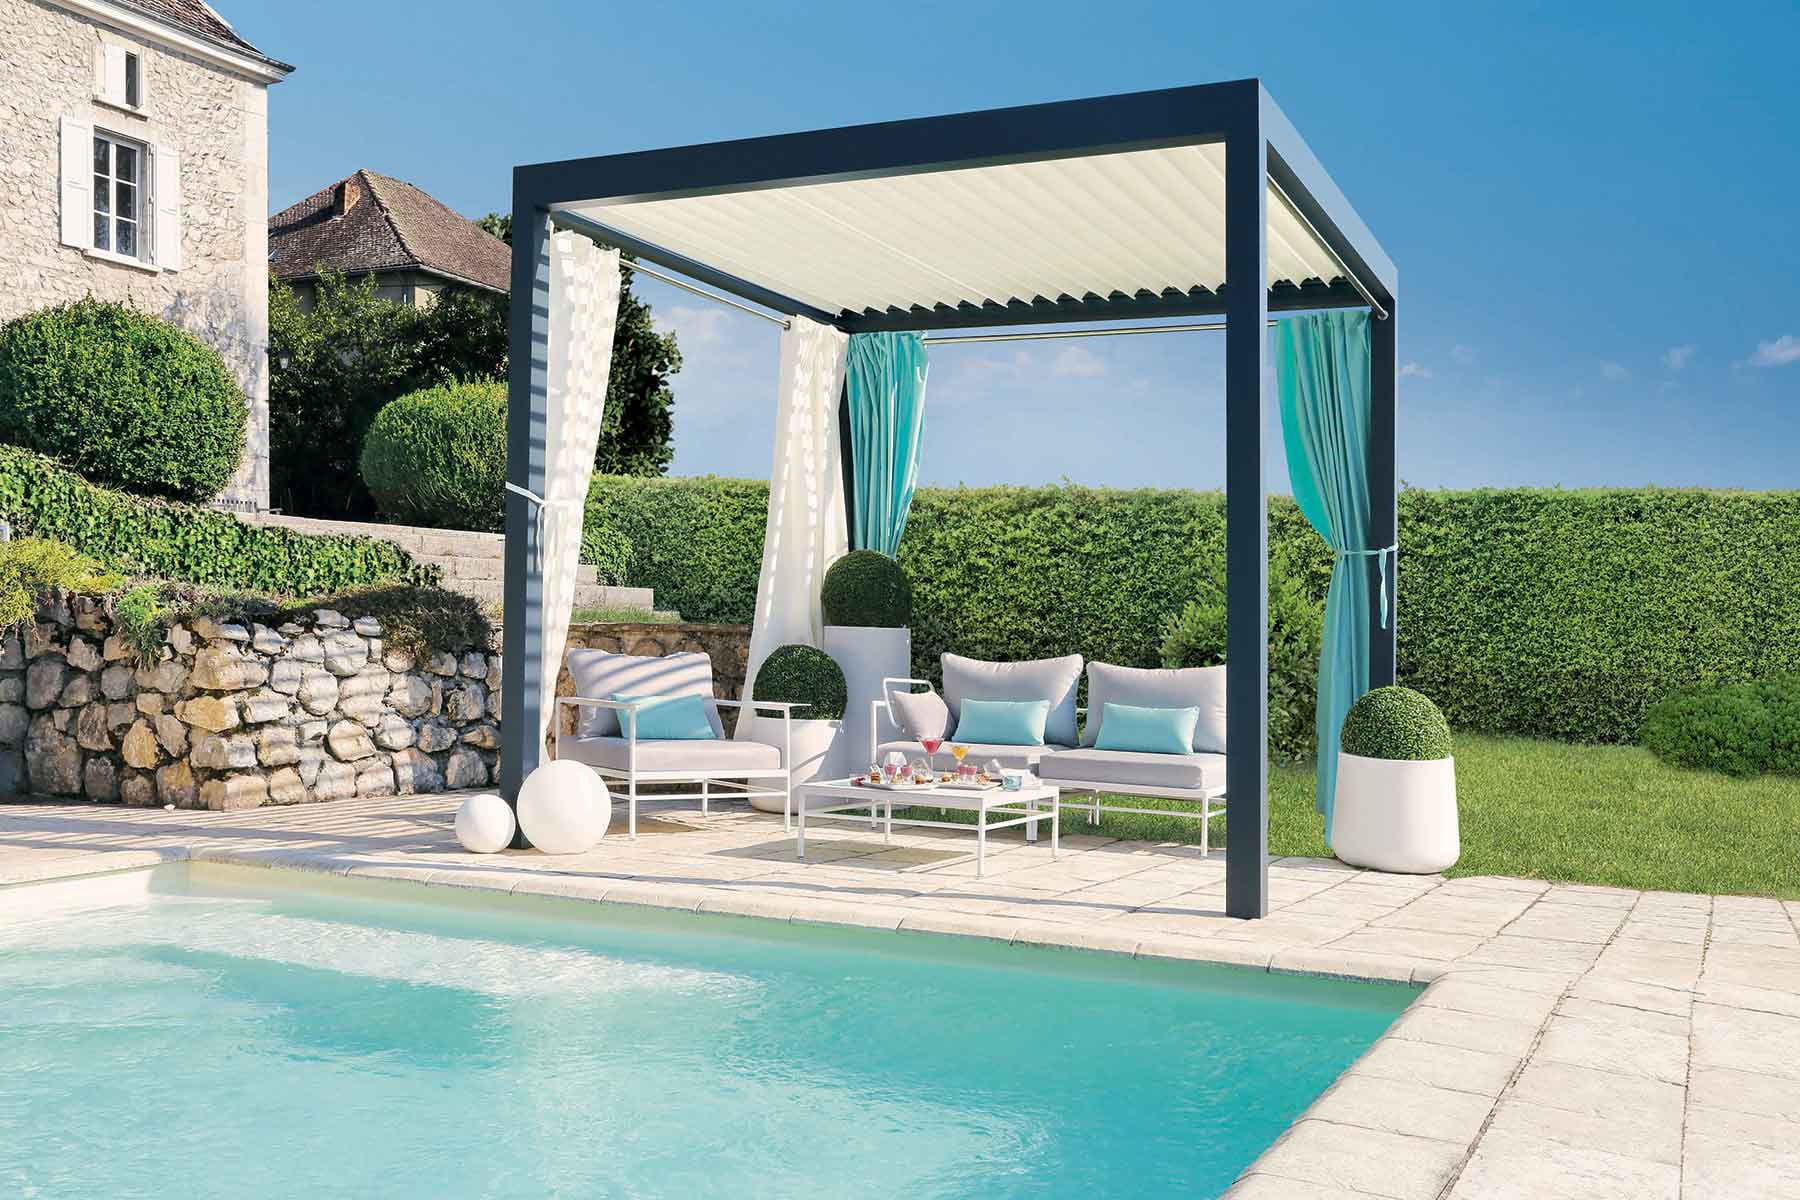 une pergola bioclimatique pour la terrasse des tonnelles et pergolas pour donner du style. Black Bedroom Furniture Sets. Home Design Ideas